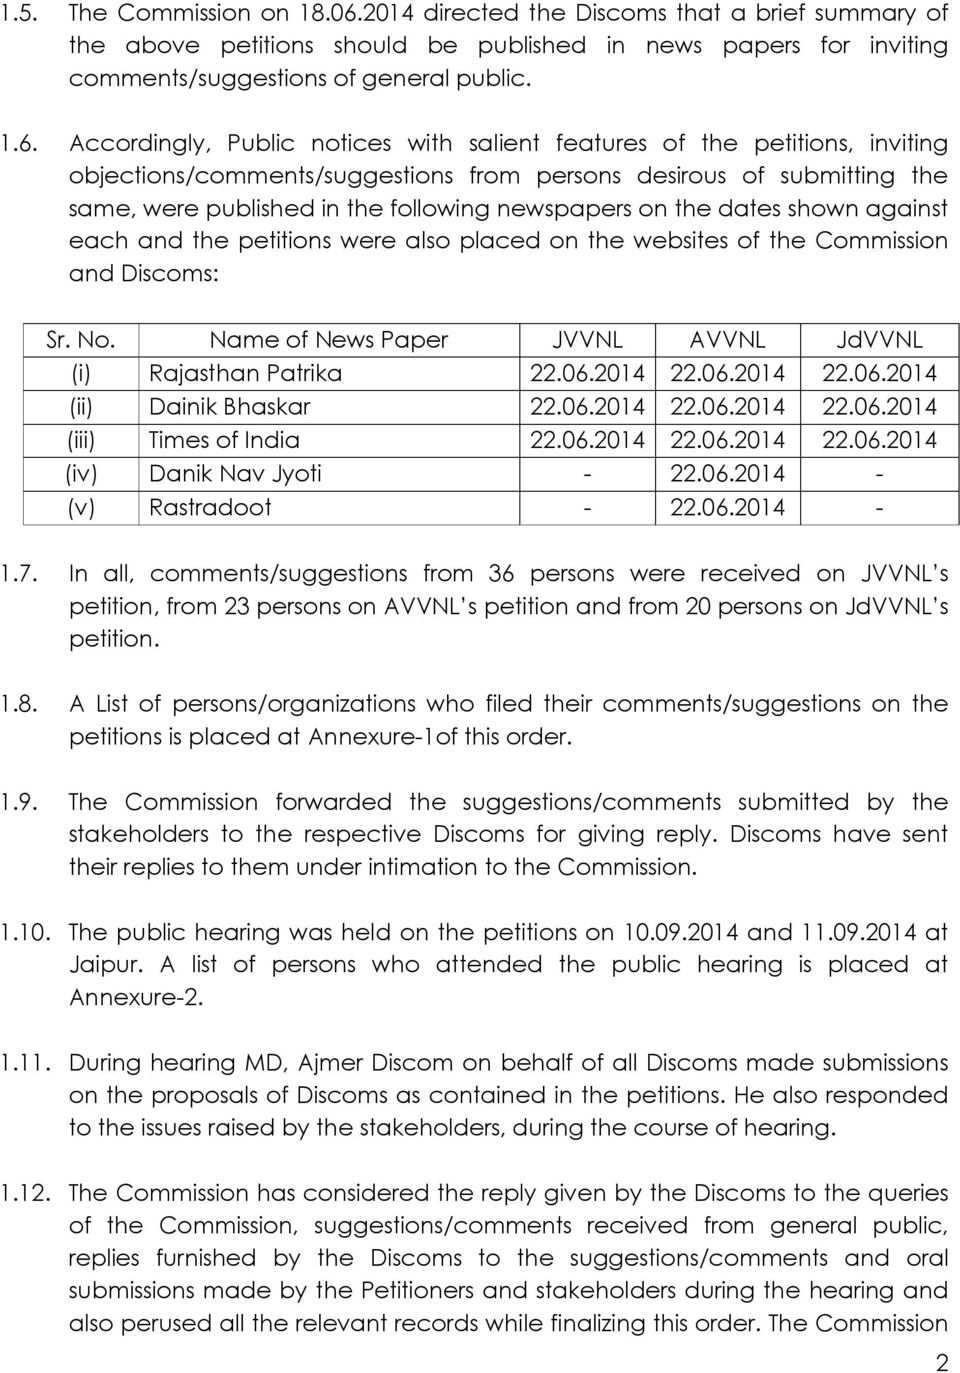 Accordingly, Public notices with salient features of the petitions, inviting objections/comments/suggestions from persons desirous of submitting the same, were published in the following newspapers